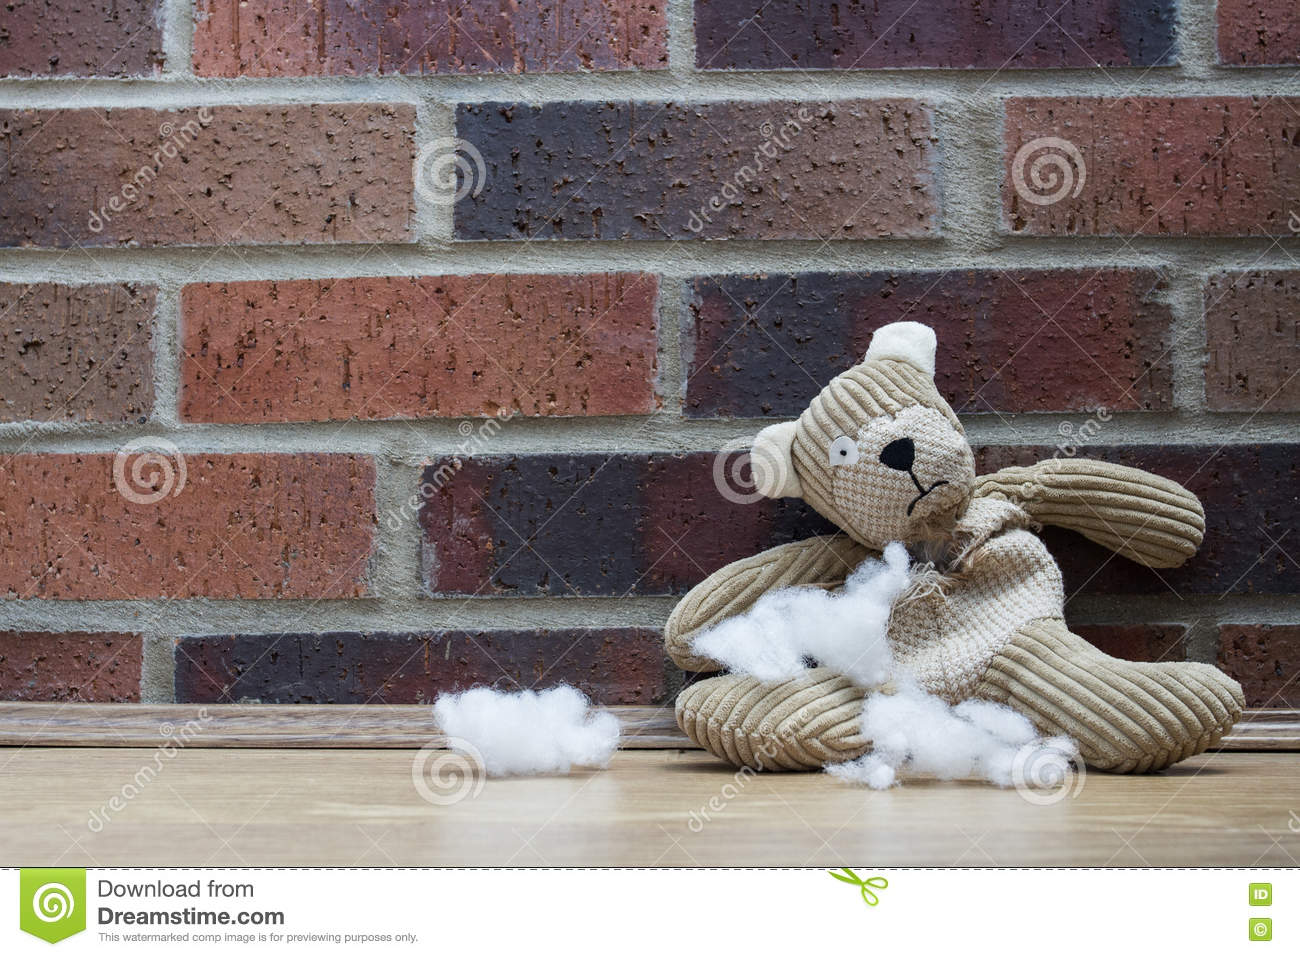 Sad abandoned teddy bear stock image image of mended 77559897 download sad abandoned teddy bear stock image image of mended 77559897 thecheapjerseys Gallery